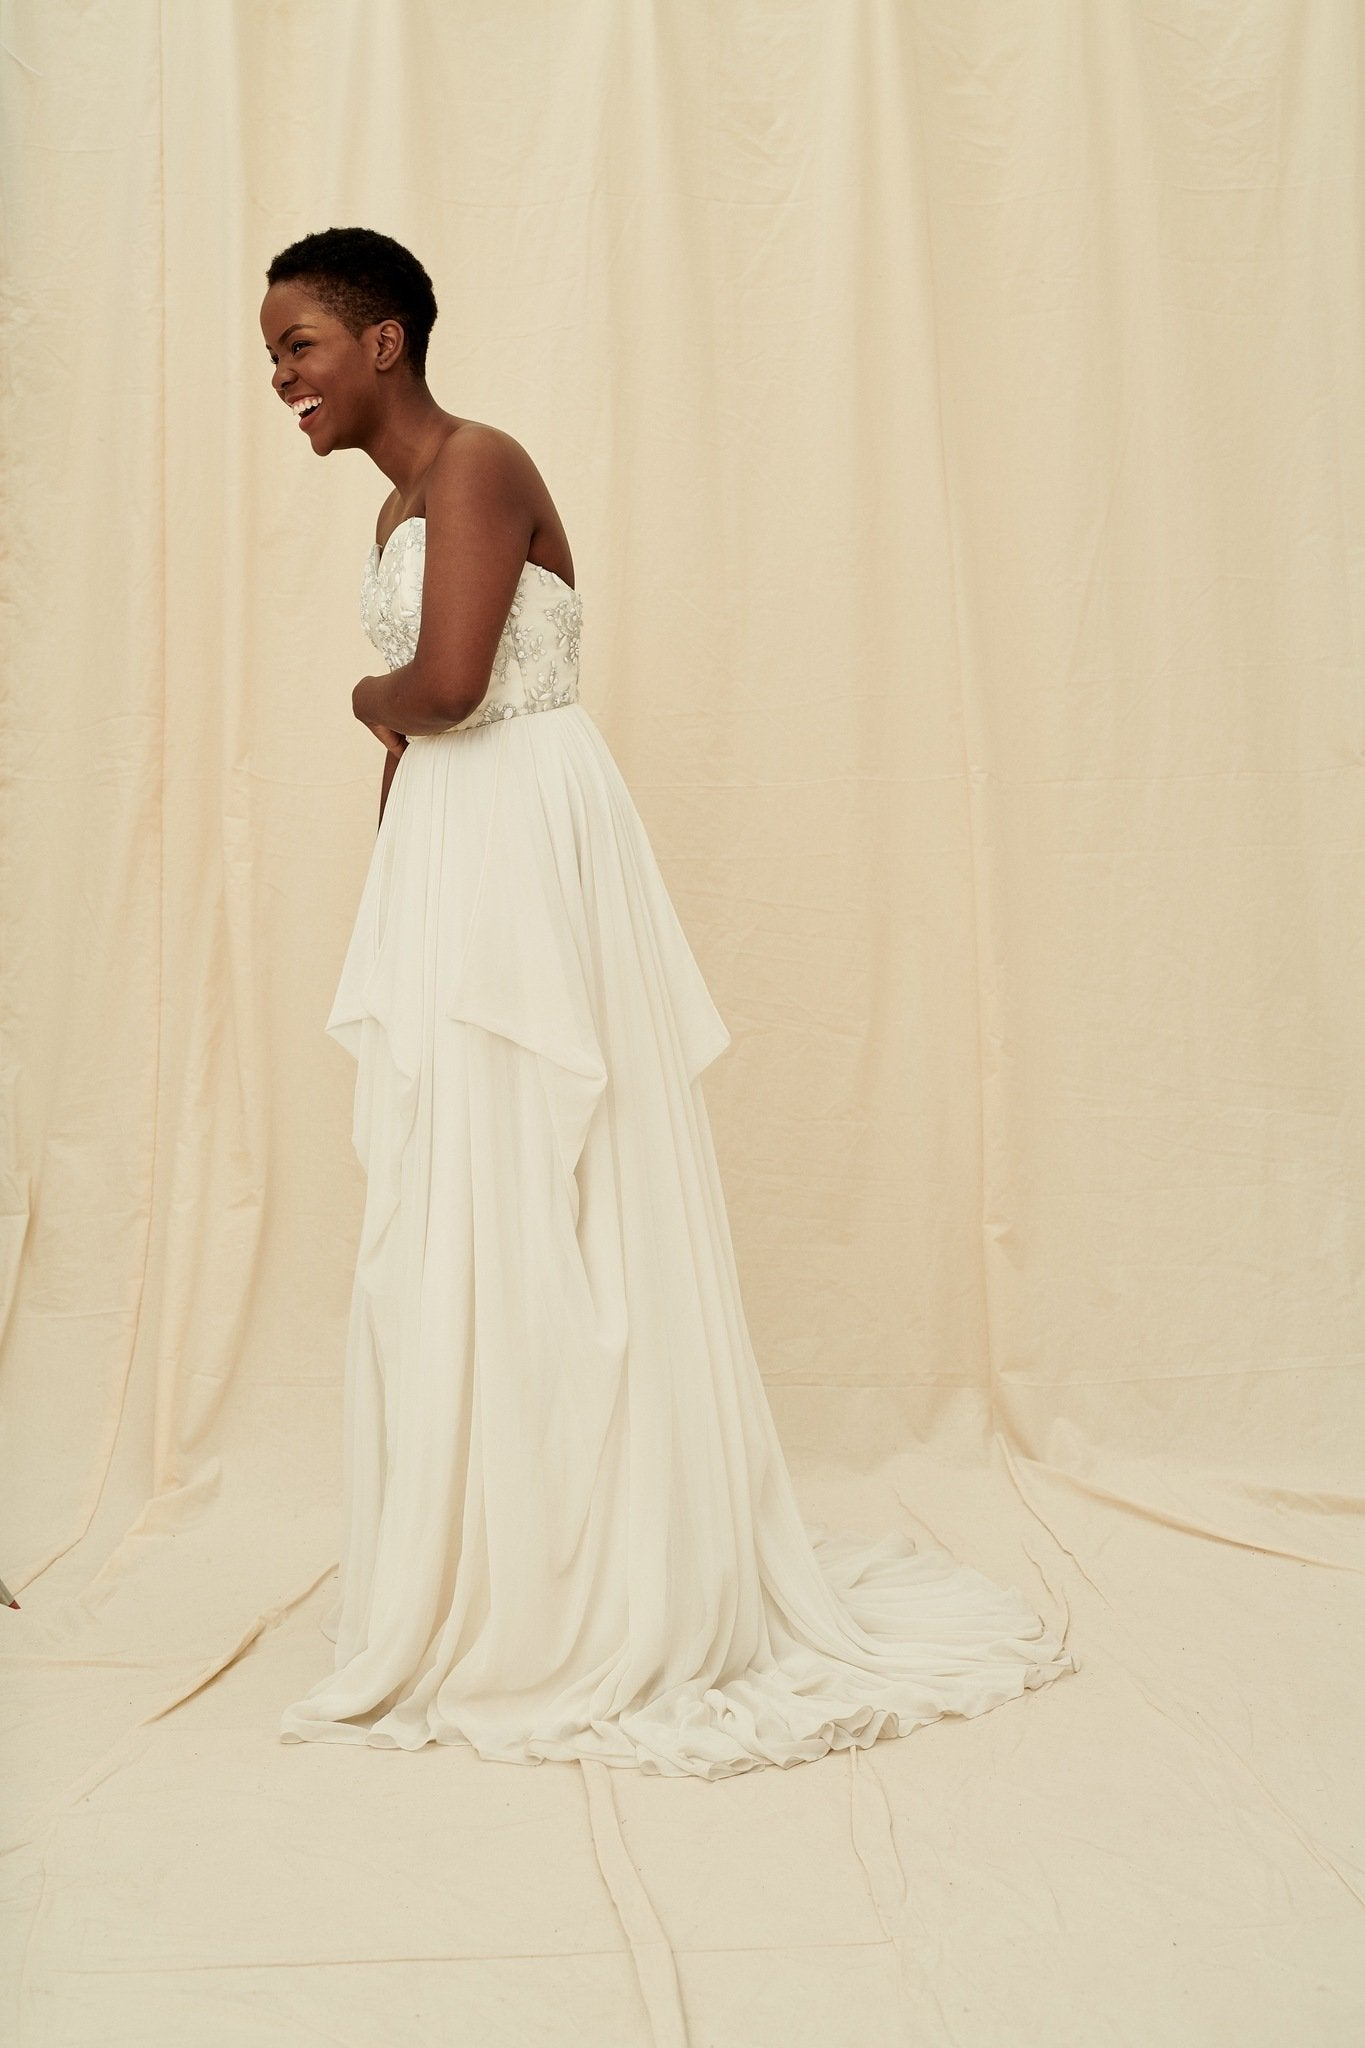 Strapless sweetheart wedding dress with silver grey beading and a flowy chiffon skirt by Truvelle